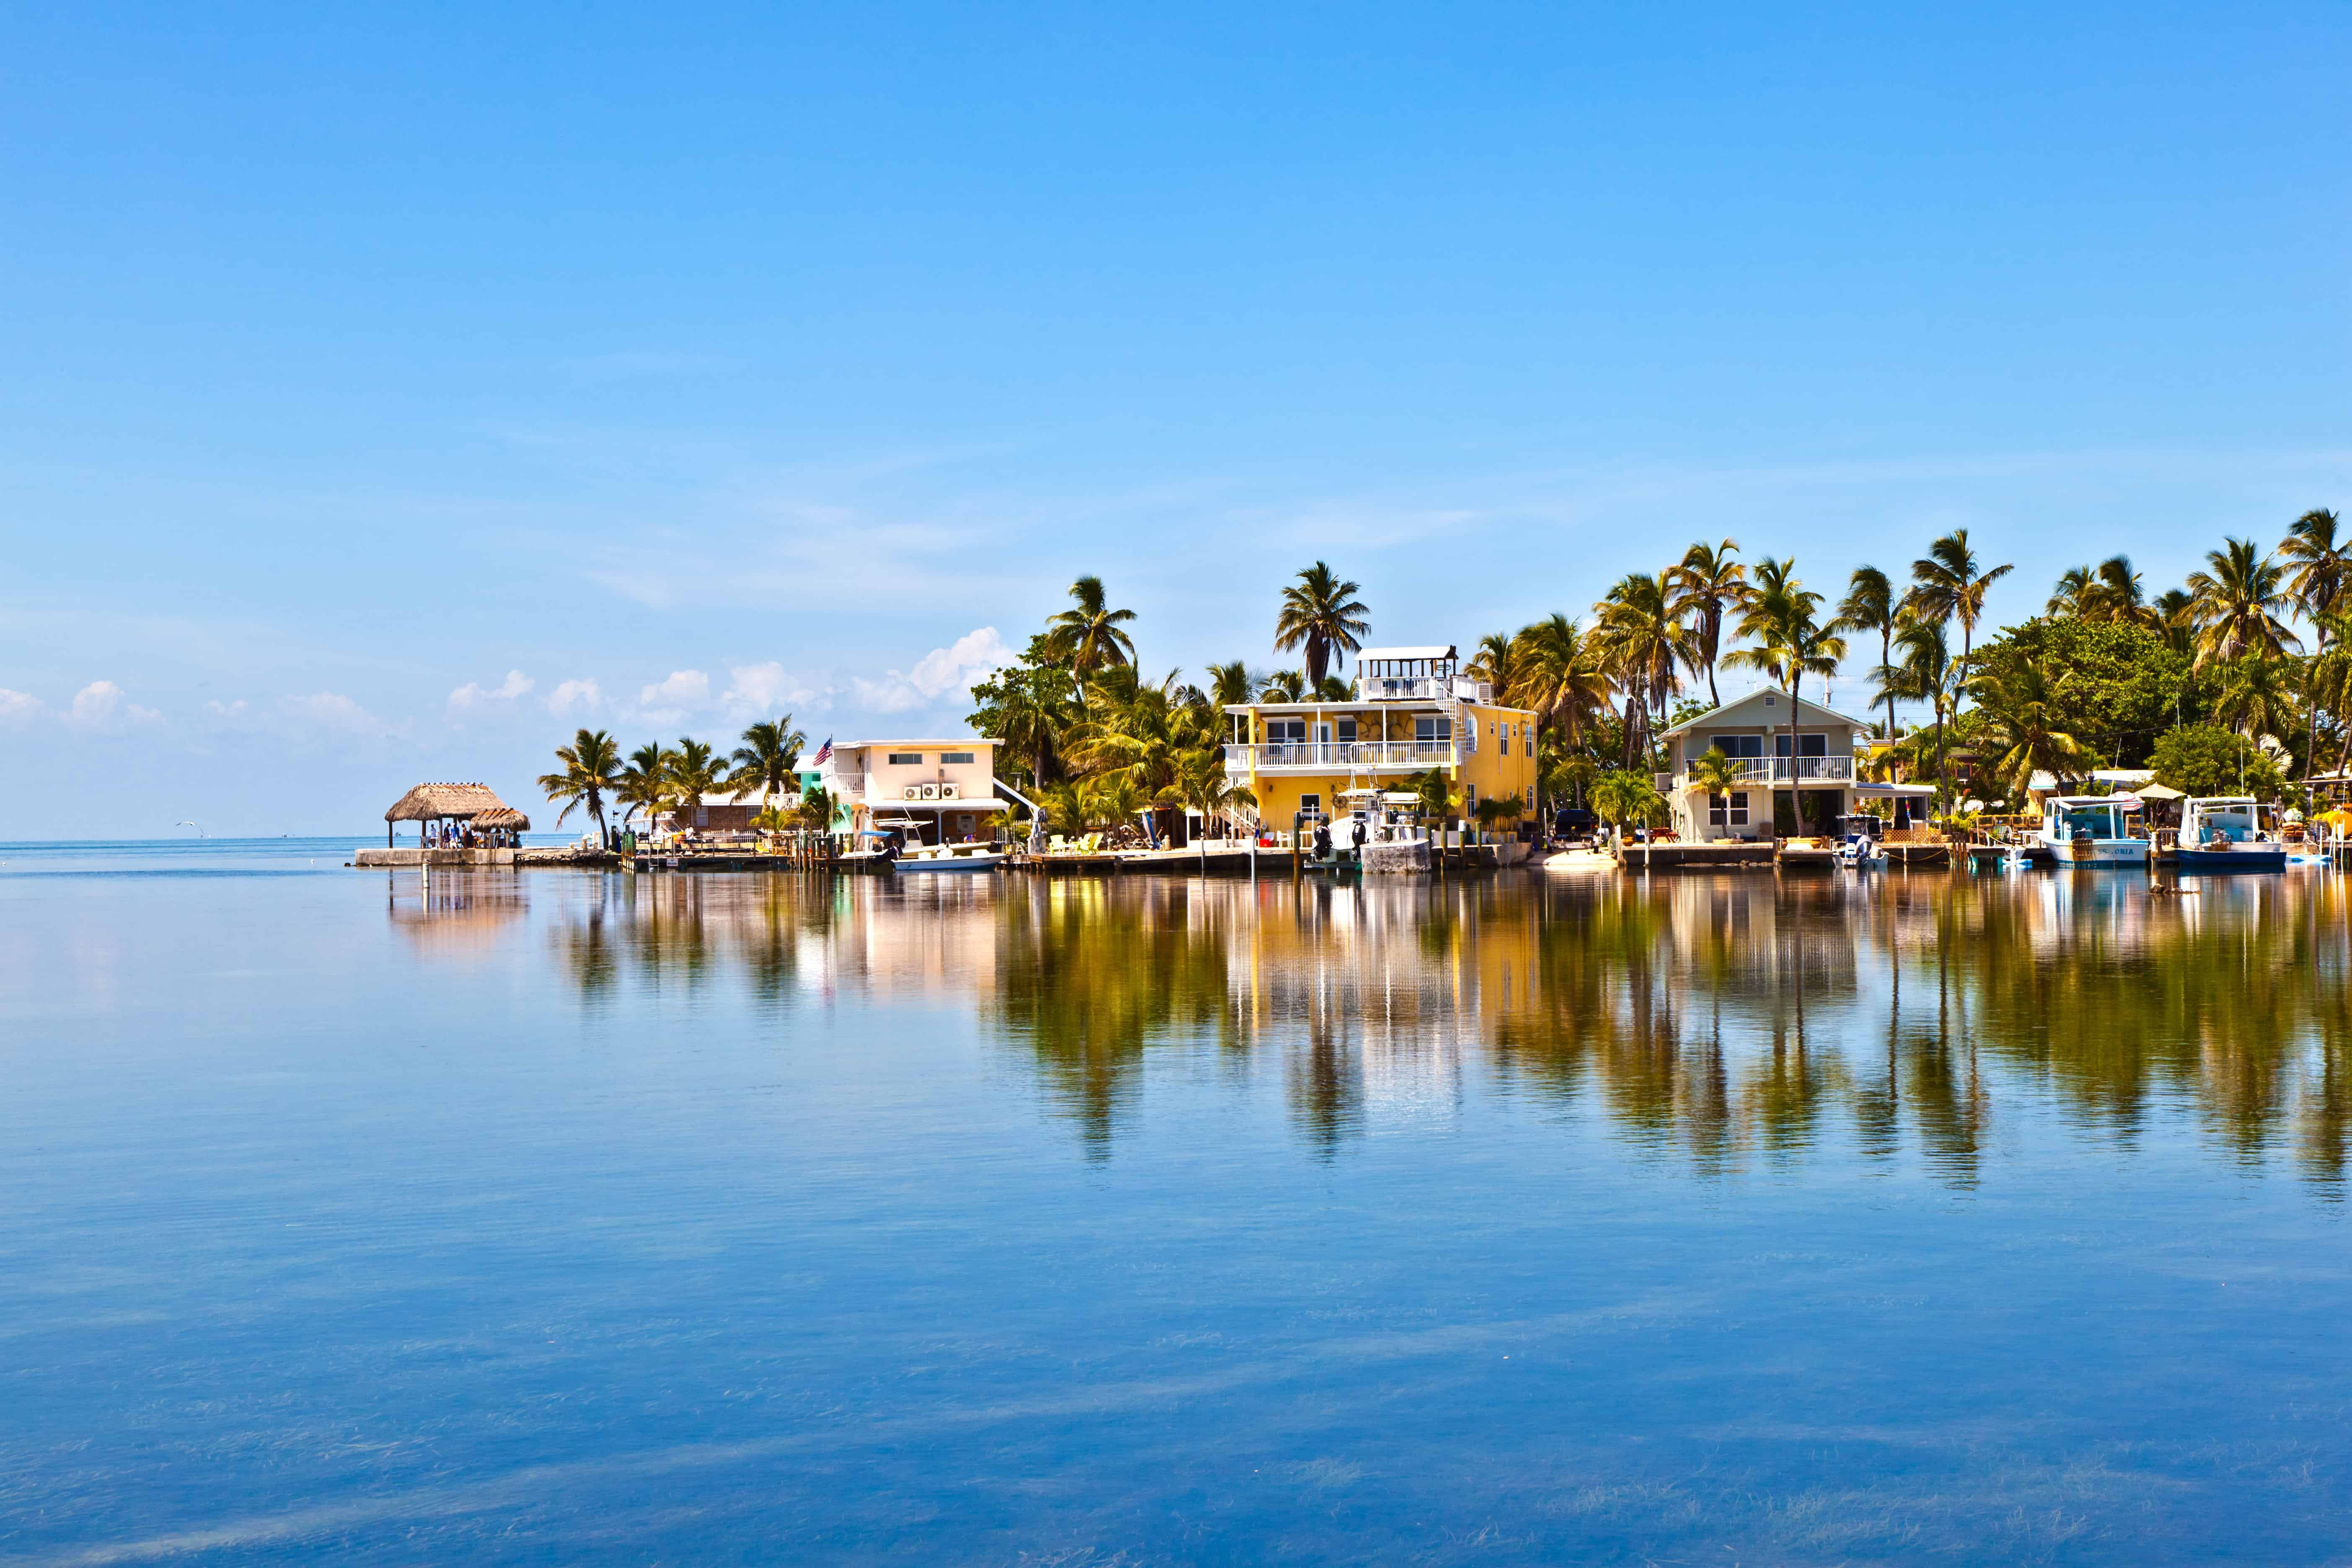 waterfront vacation homes in Key West, FL